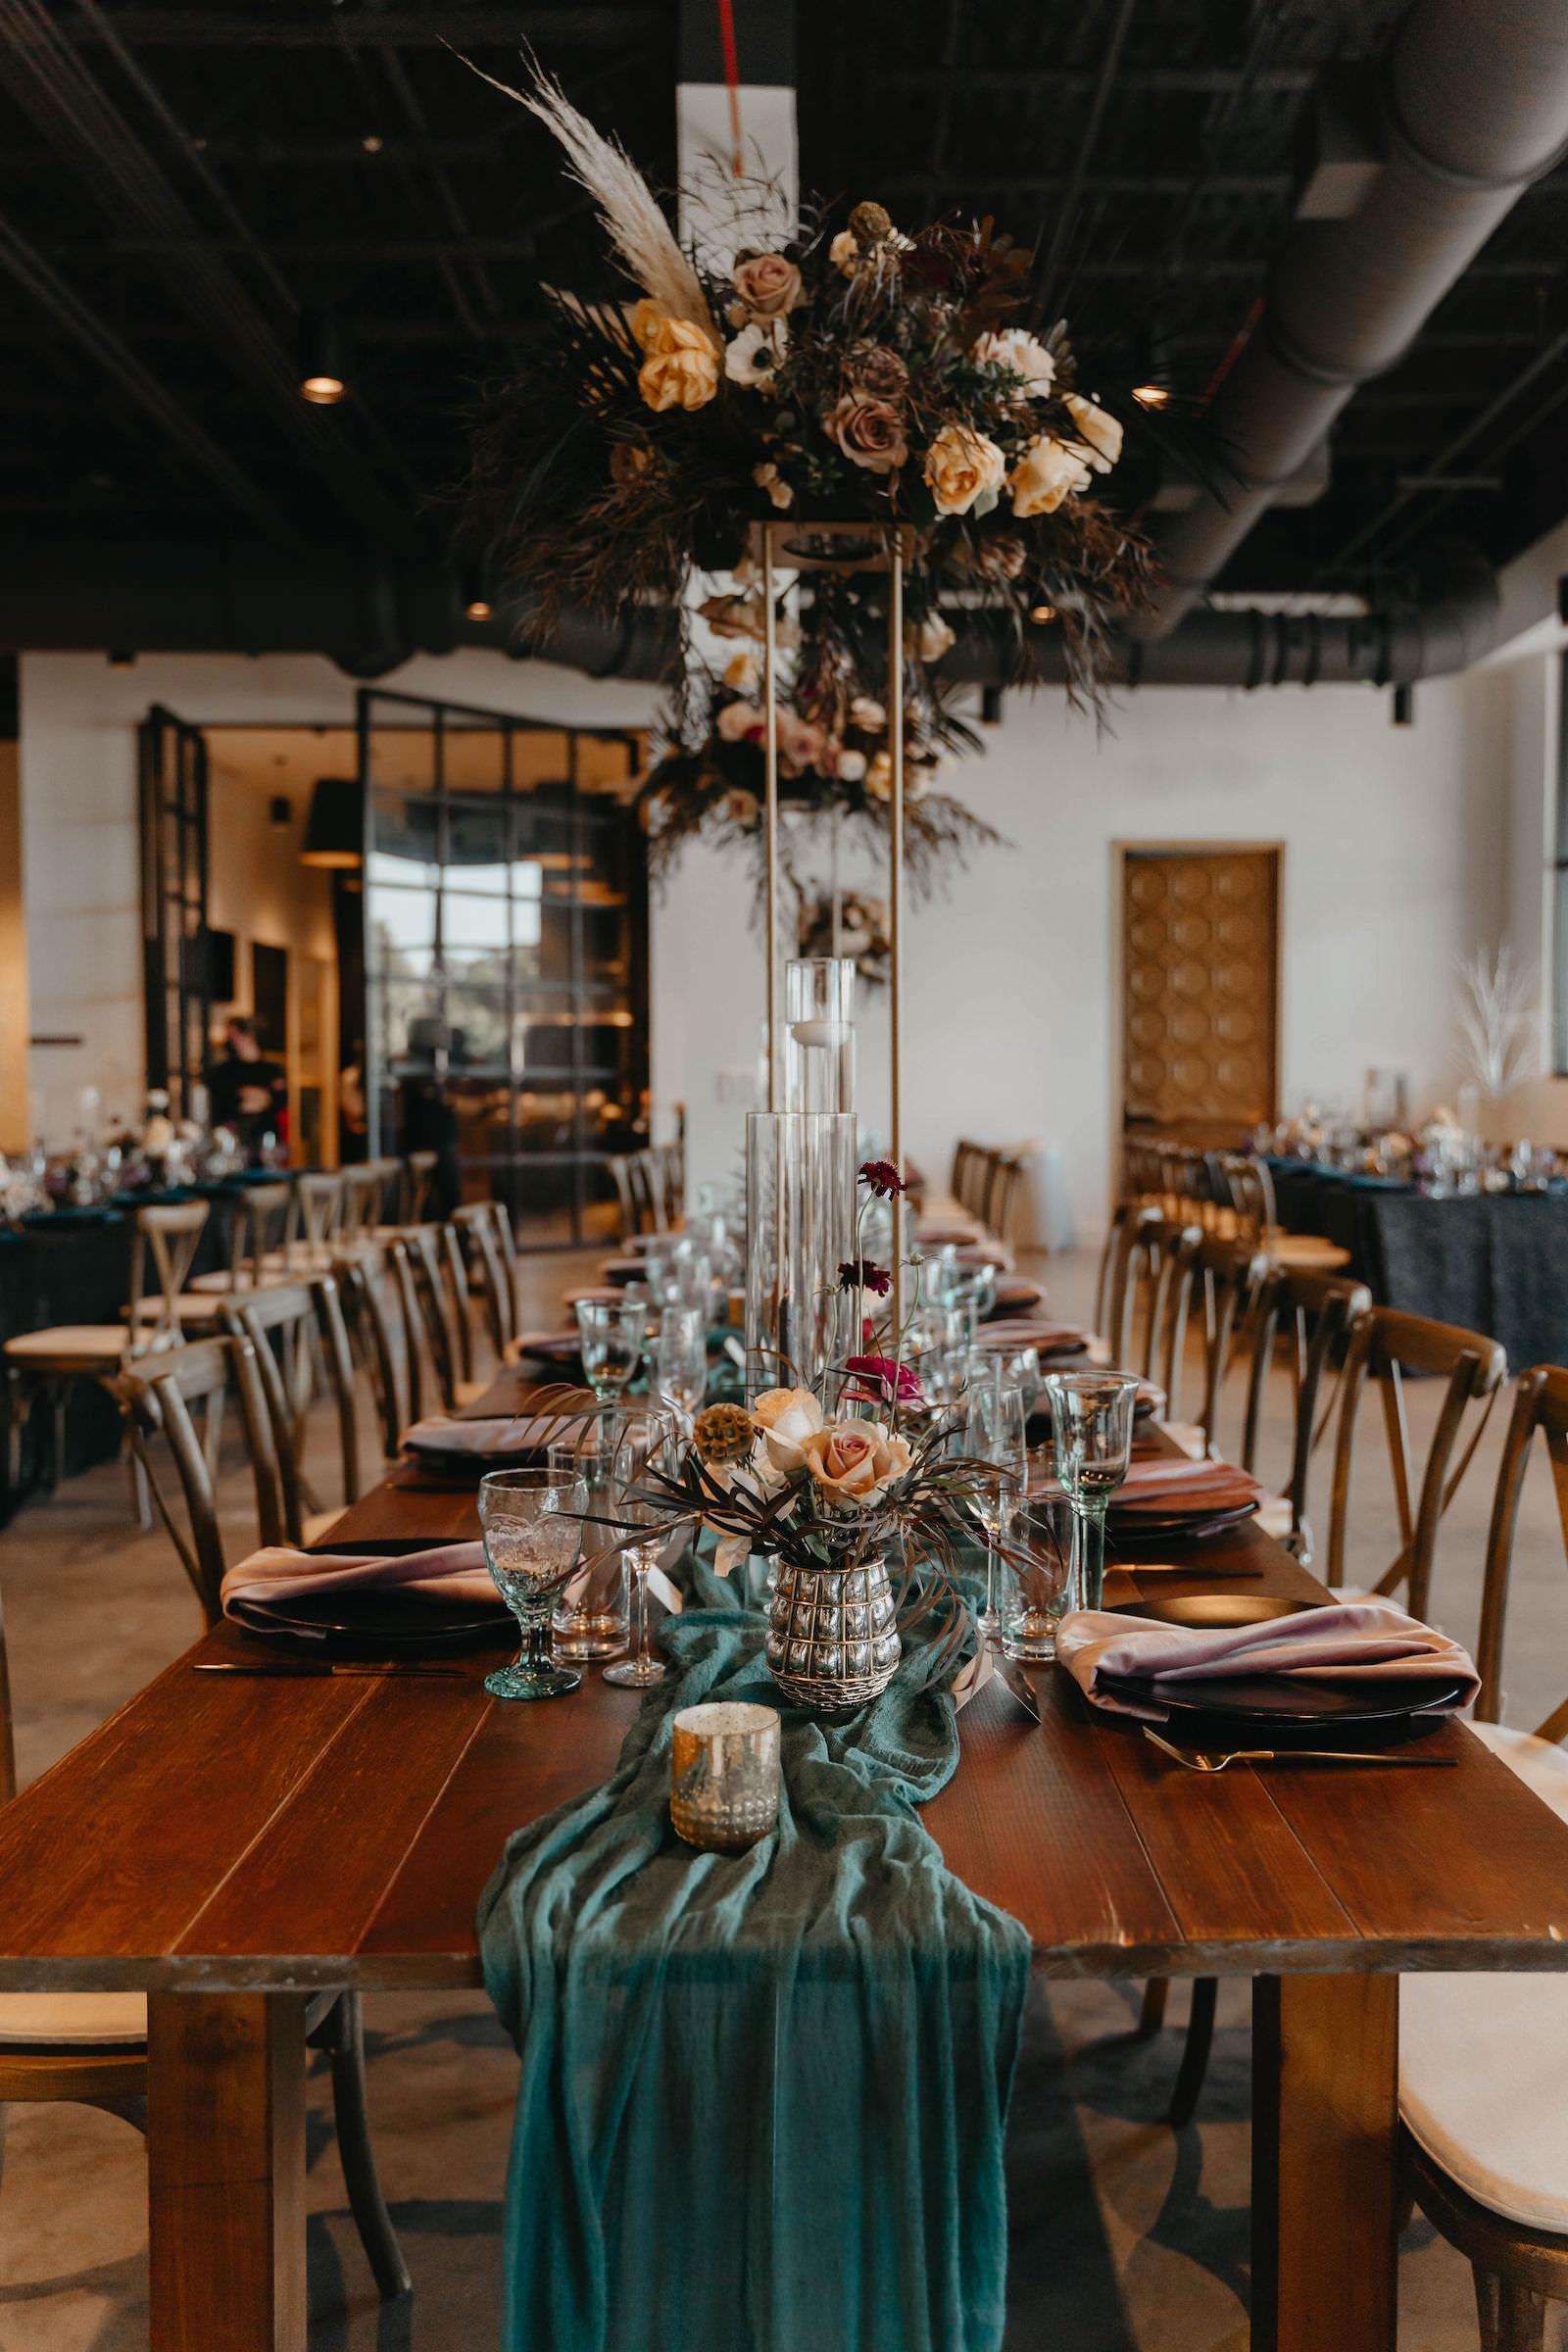 Indoor Wedding Reception at Tampa Wedding Venue Hyde House   Long Wood Feasting Communal Tables with Cross Back Chairs and Dark Emerald Green Cheesecloth Gossamer Runners   Tall Geometric Vase Centerpieces with Dark Green and Black Leaves, Pampas Grass, and Blush Cafe au Lait Roses with Candlesticks